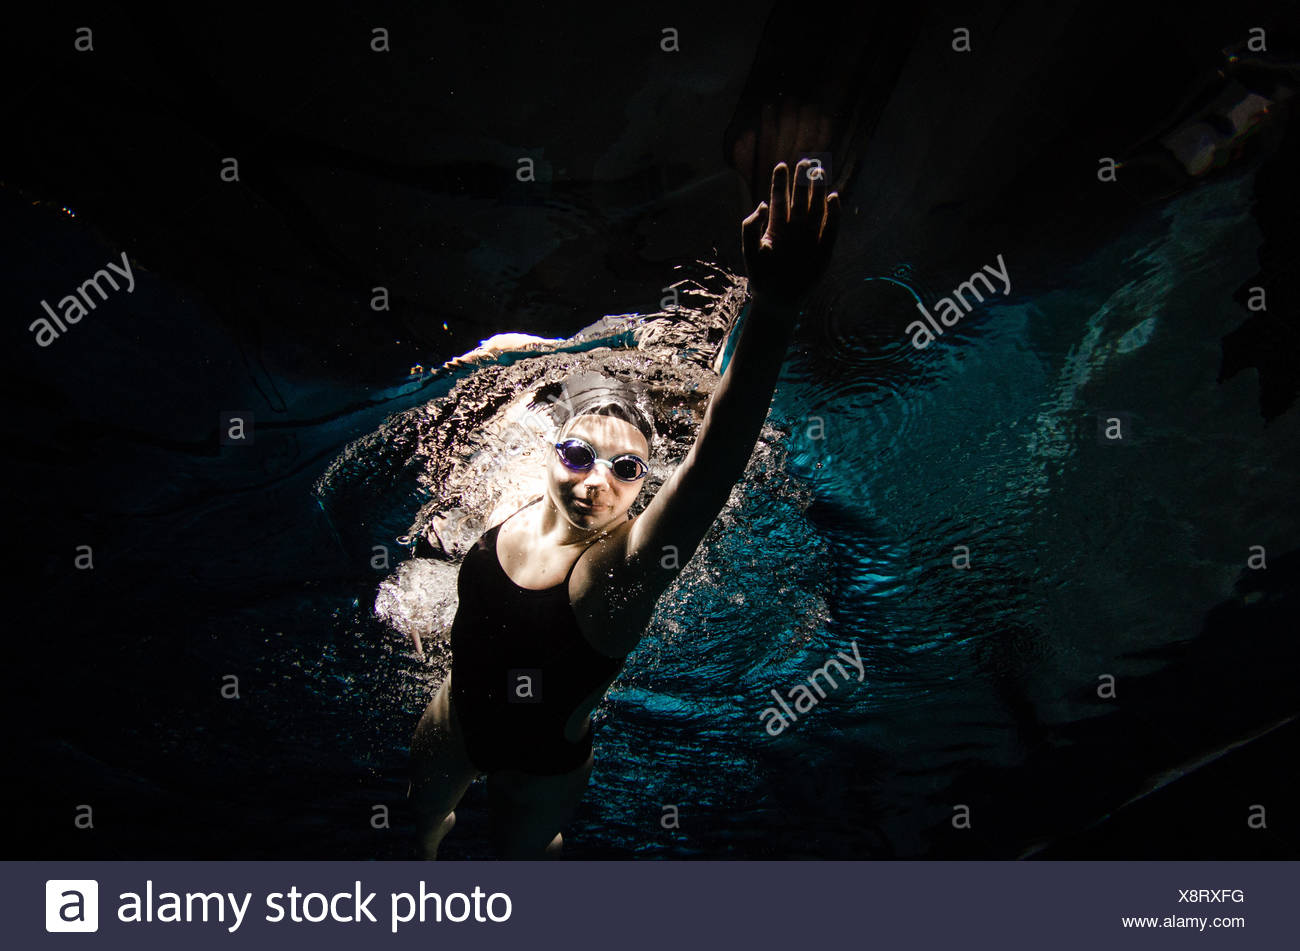 A young woman in a black bathing suit, black swim cap and goggles swims freestyle. - Stock Image